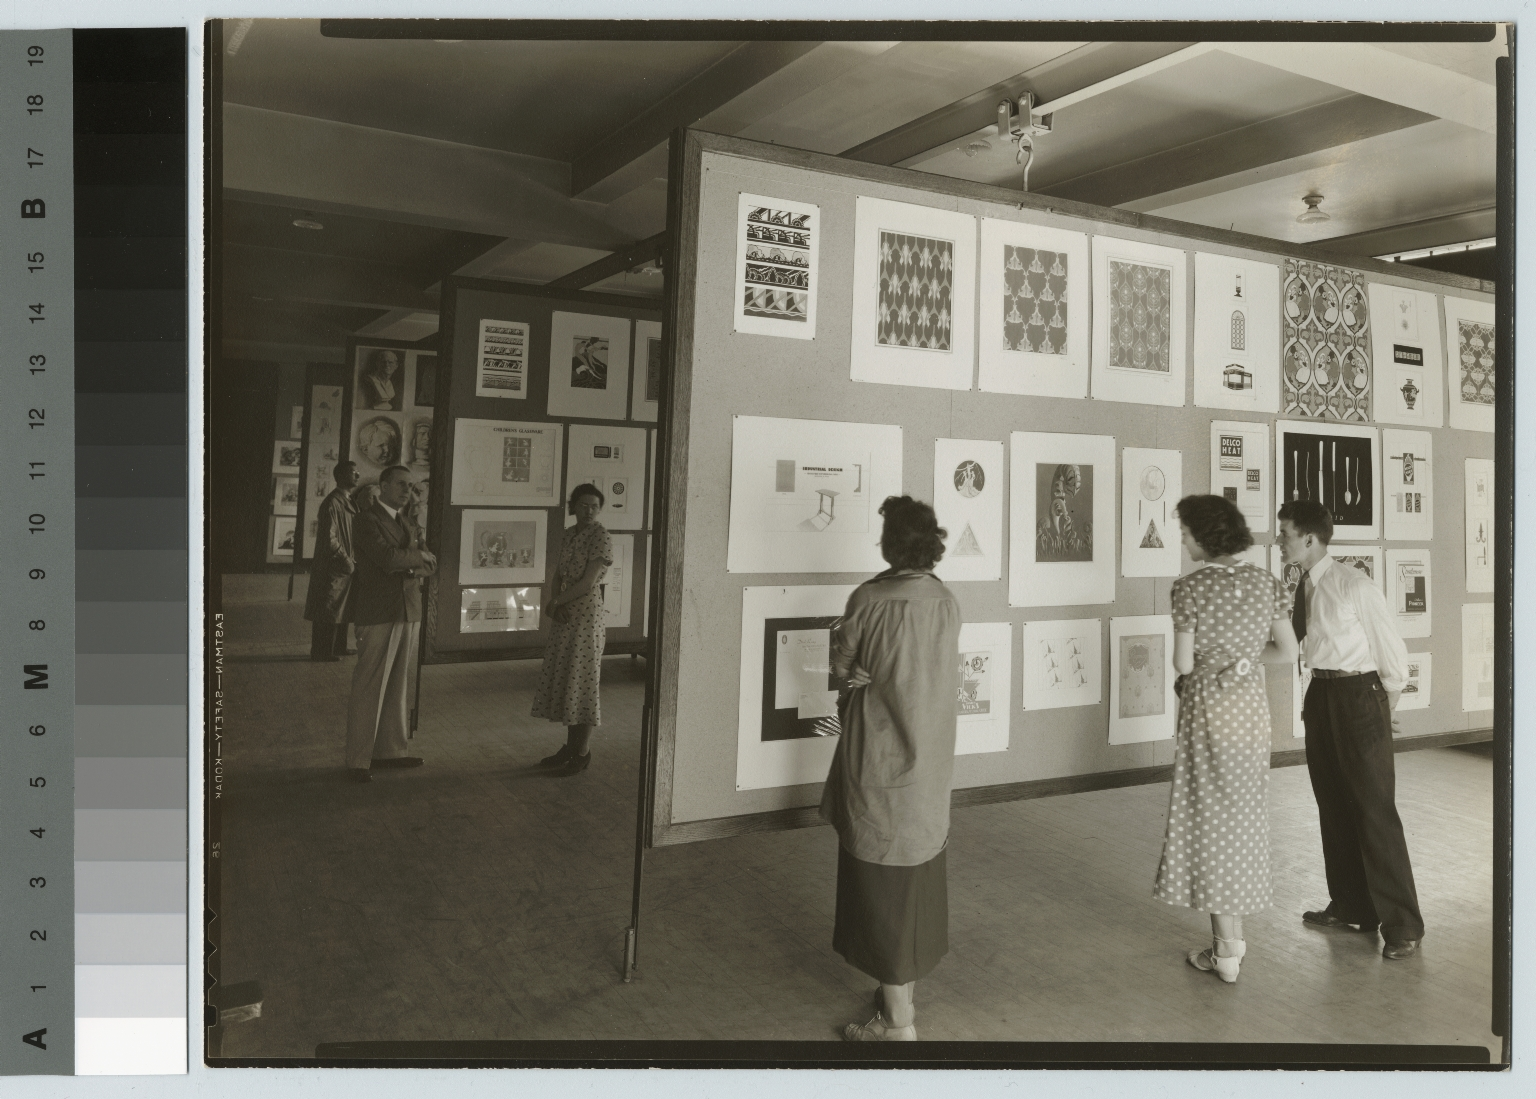 Academics, art and design, interior view of an exhibition of student work, [1930-1940]